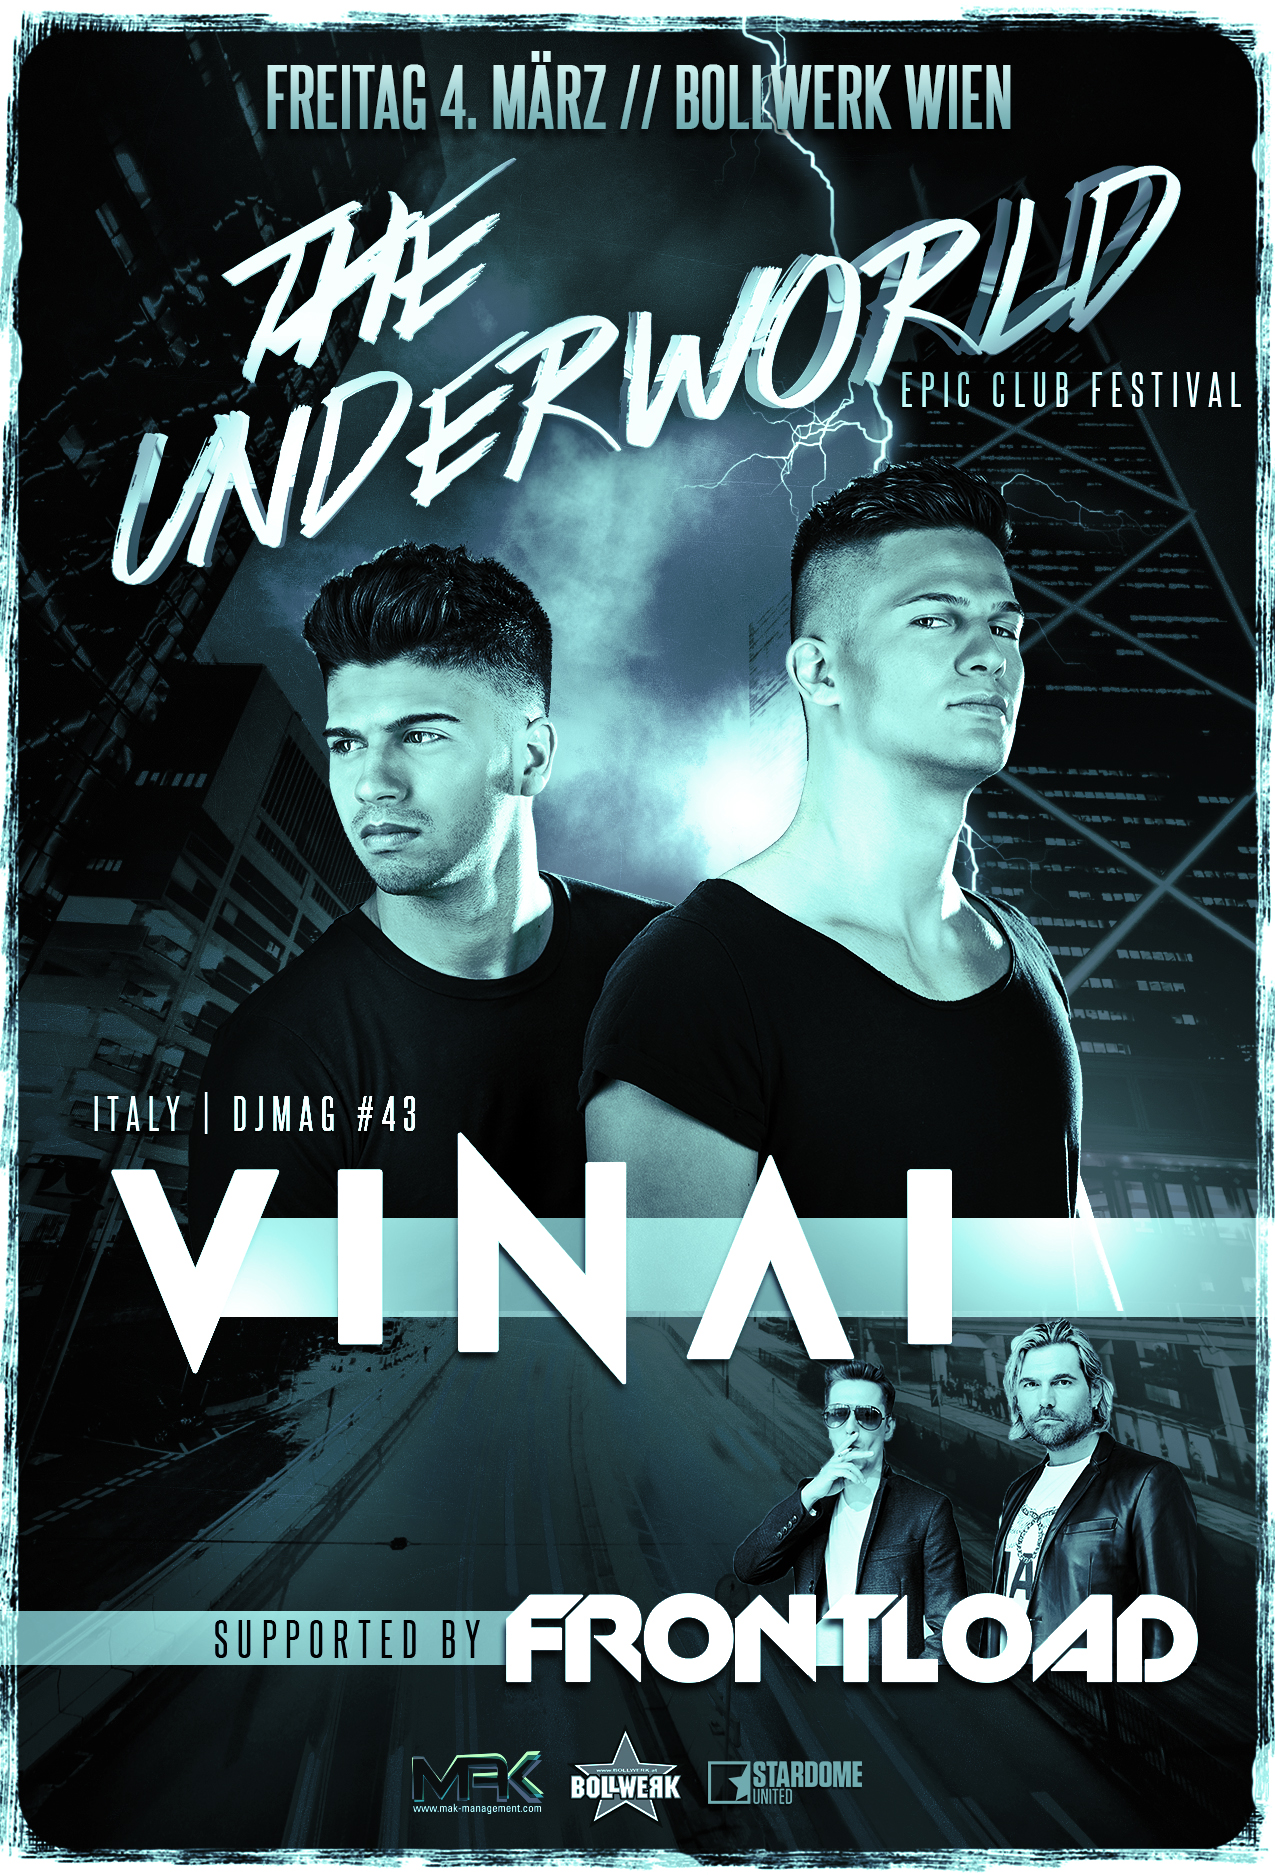 The Underworld with special guest VINAI, supported by Frontload